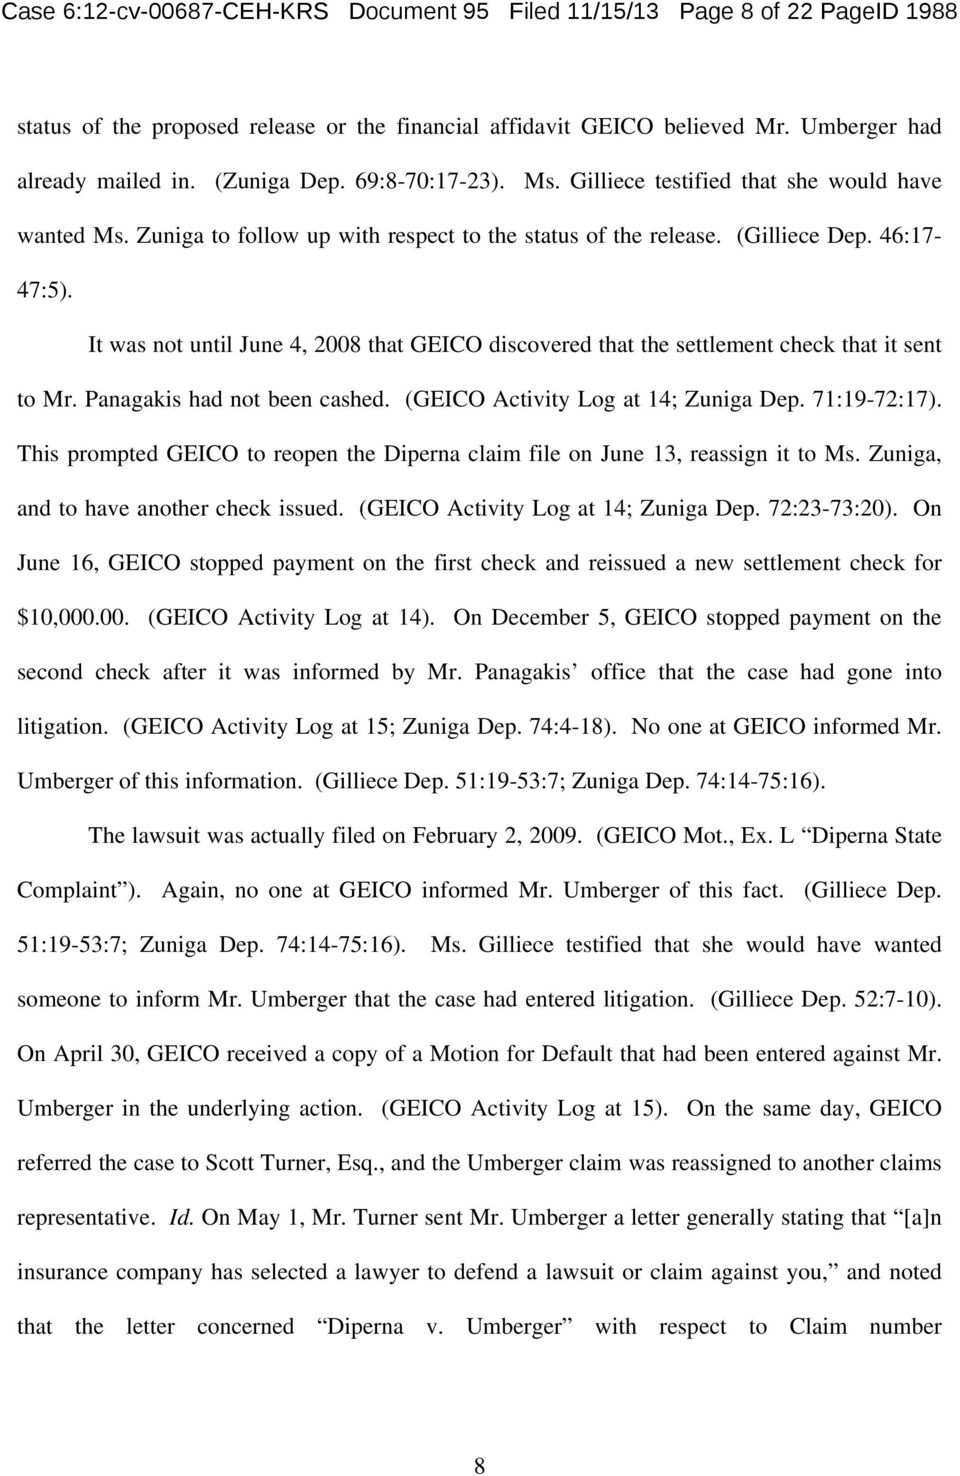 It was not until June 4, 2008 that GEICO discovered that the settlement check that it sent to Mr. Panagakis had not been cashed. (GEICO Activity Log at 14; Zuniga Dep. 71:19-72:17).